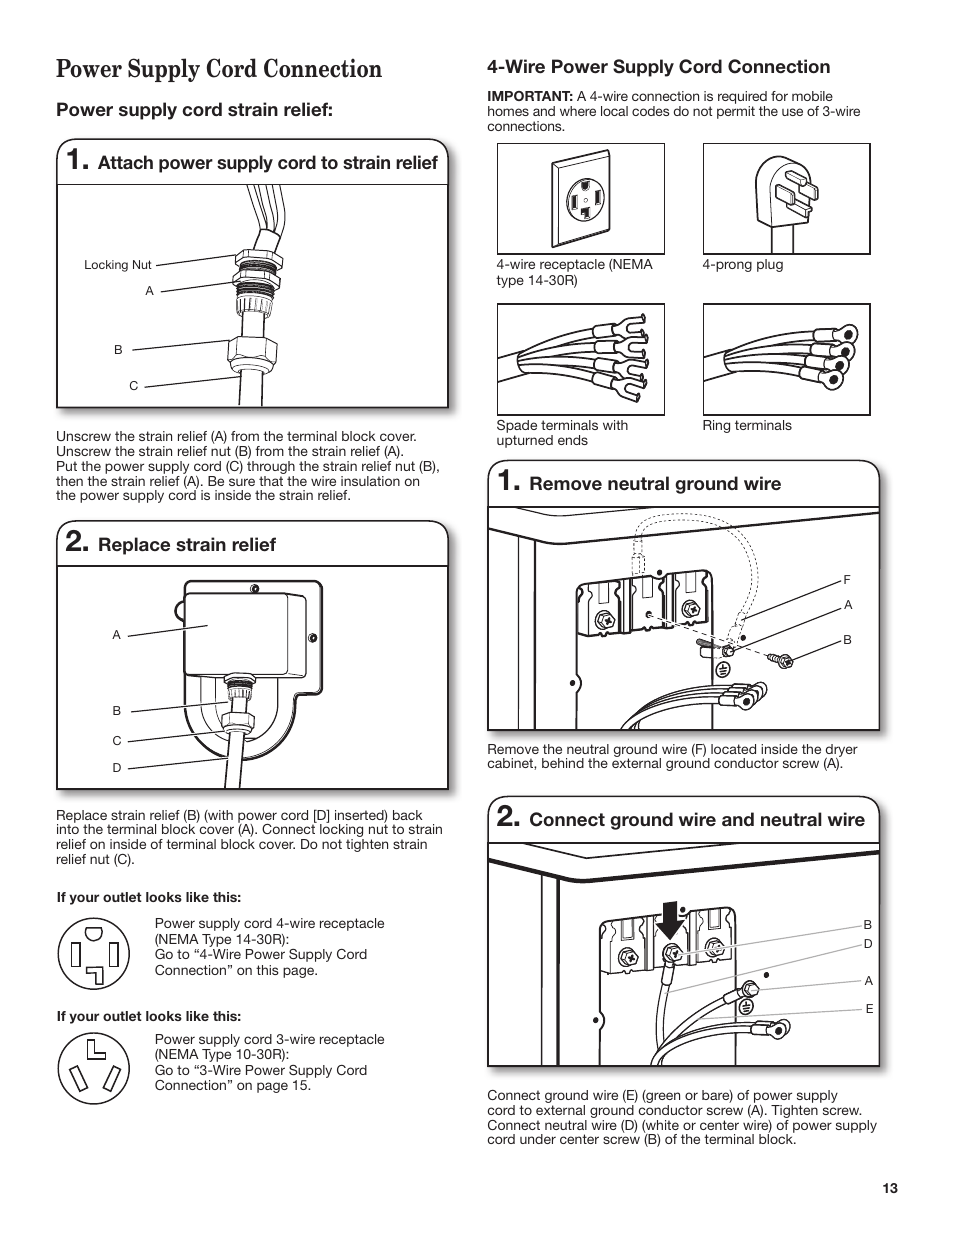 Power Supply Cord Connection Whirlpool Wed7500vw User Manual 4 Wire Dryer Diagram Page 13 24